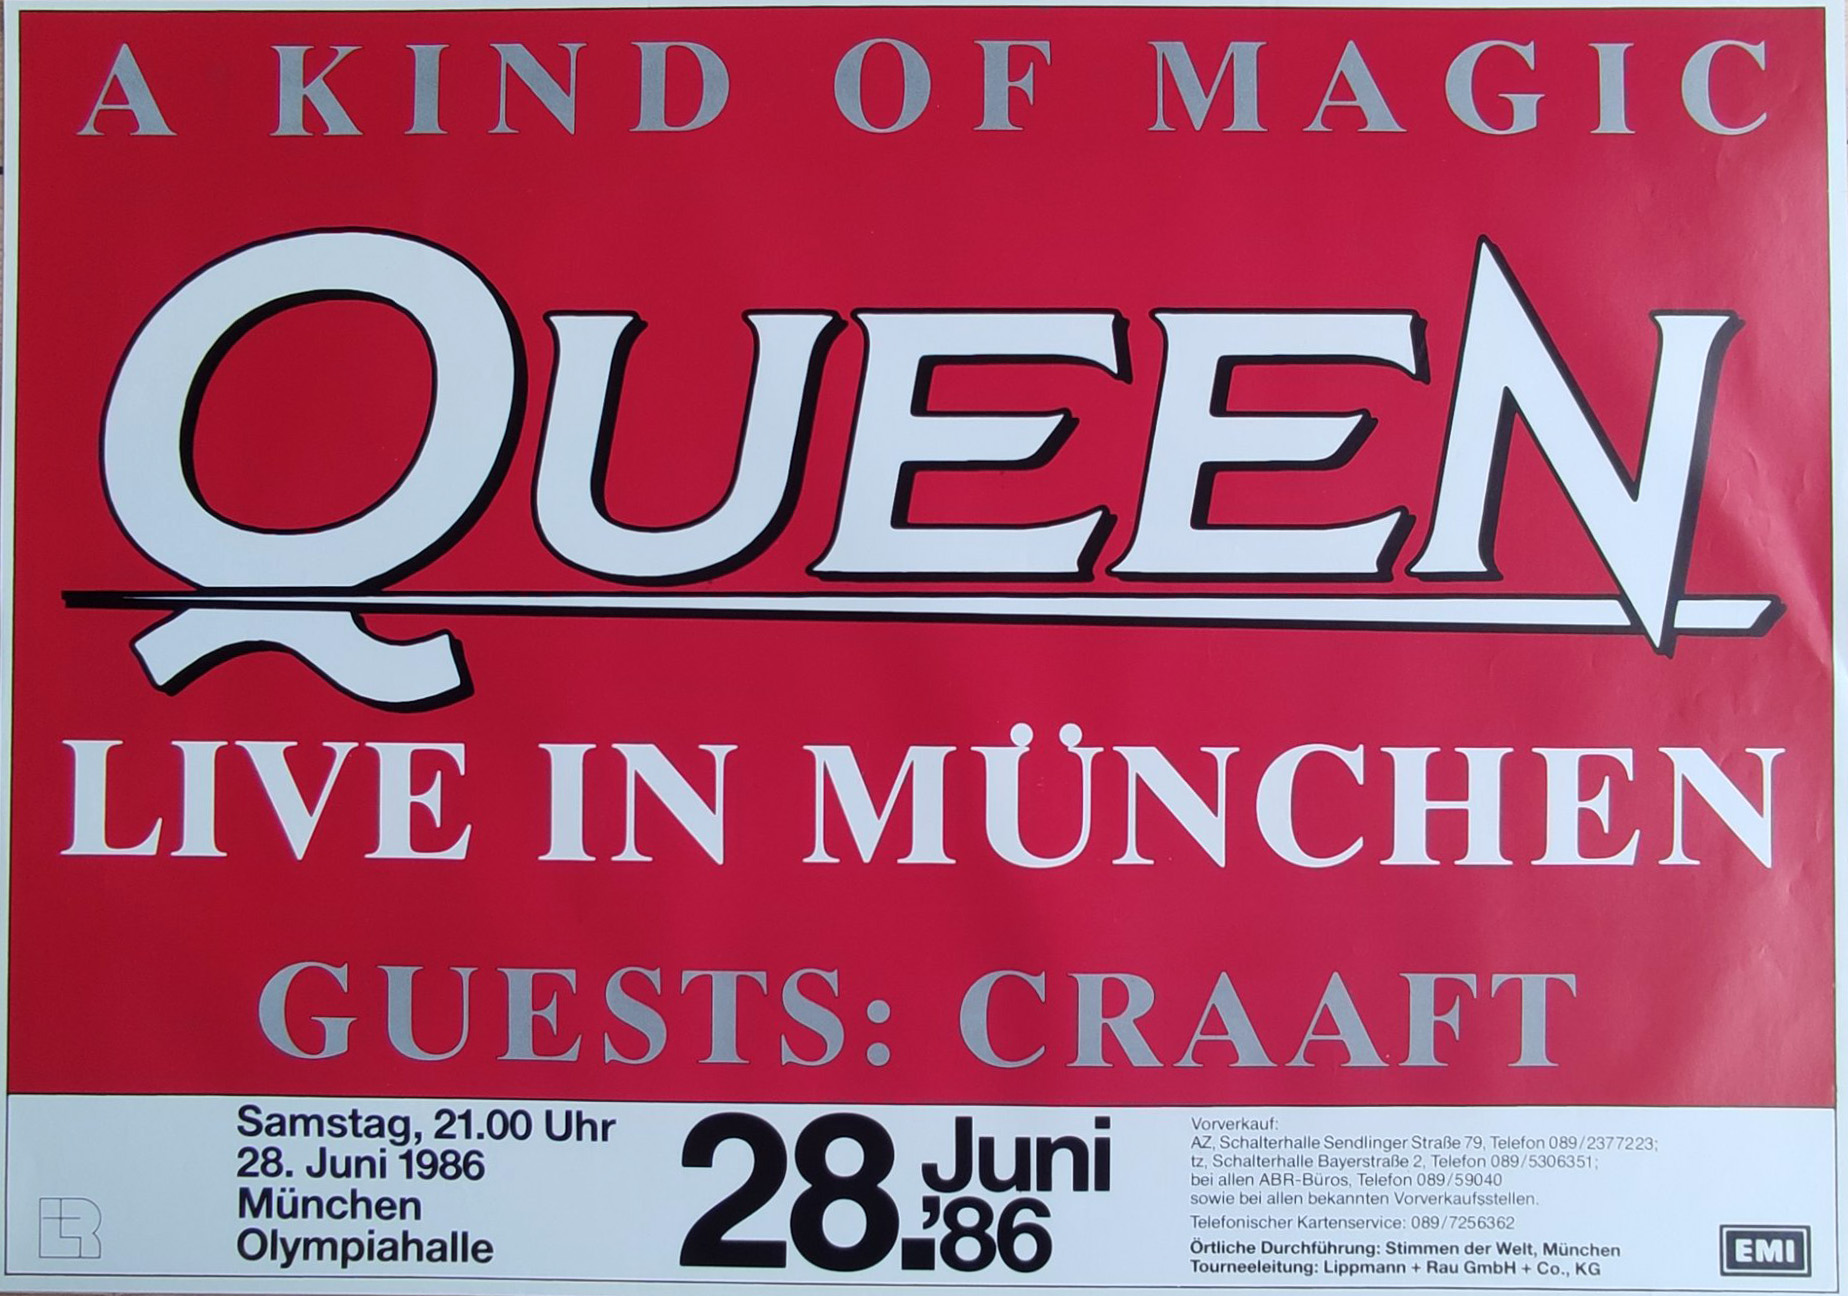 Queen in Munich on 28.06.1986